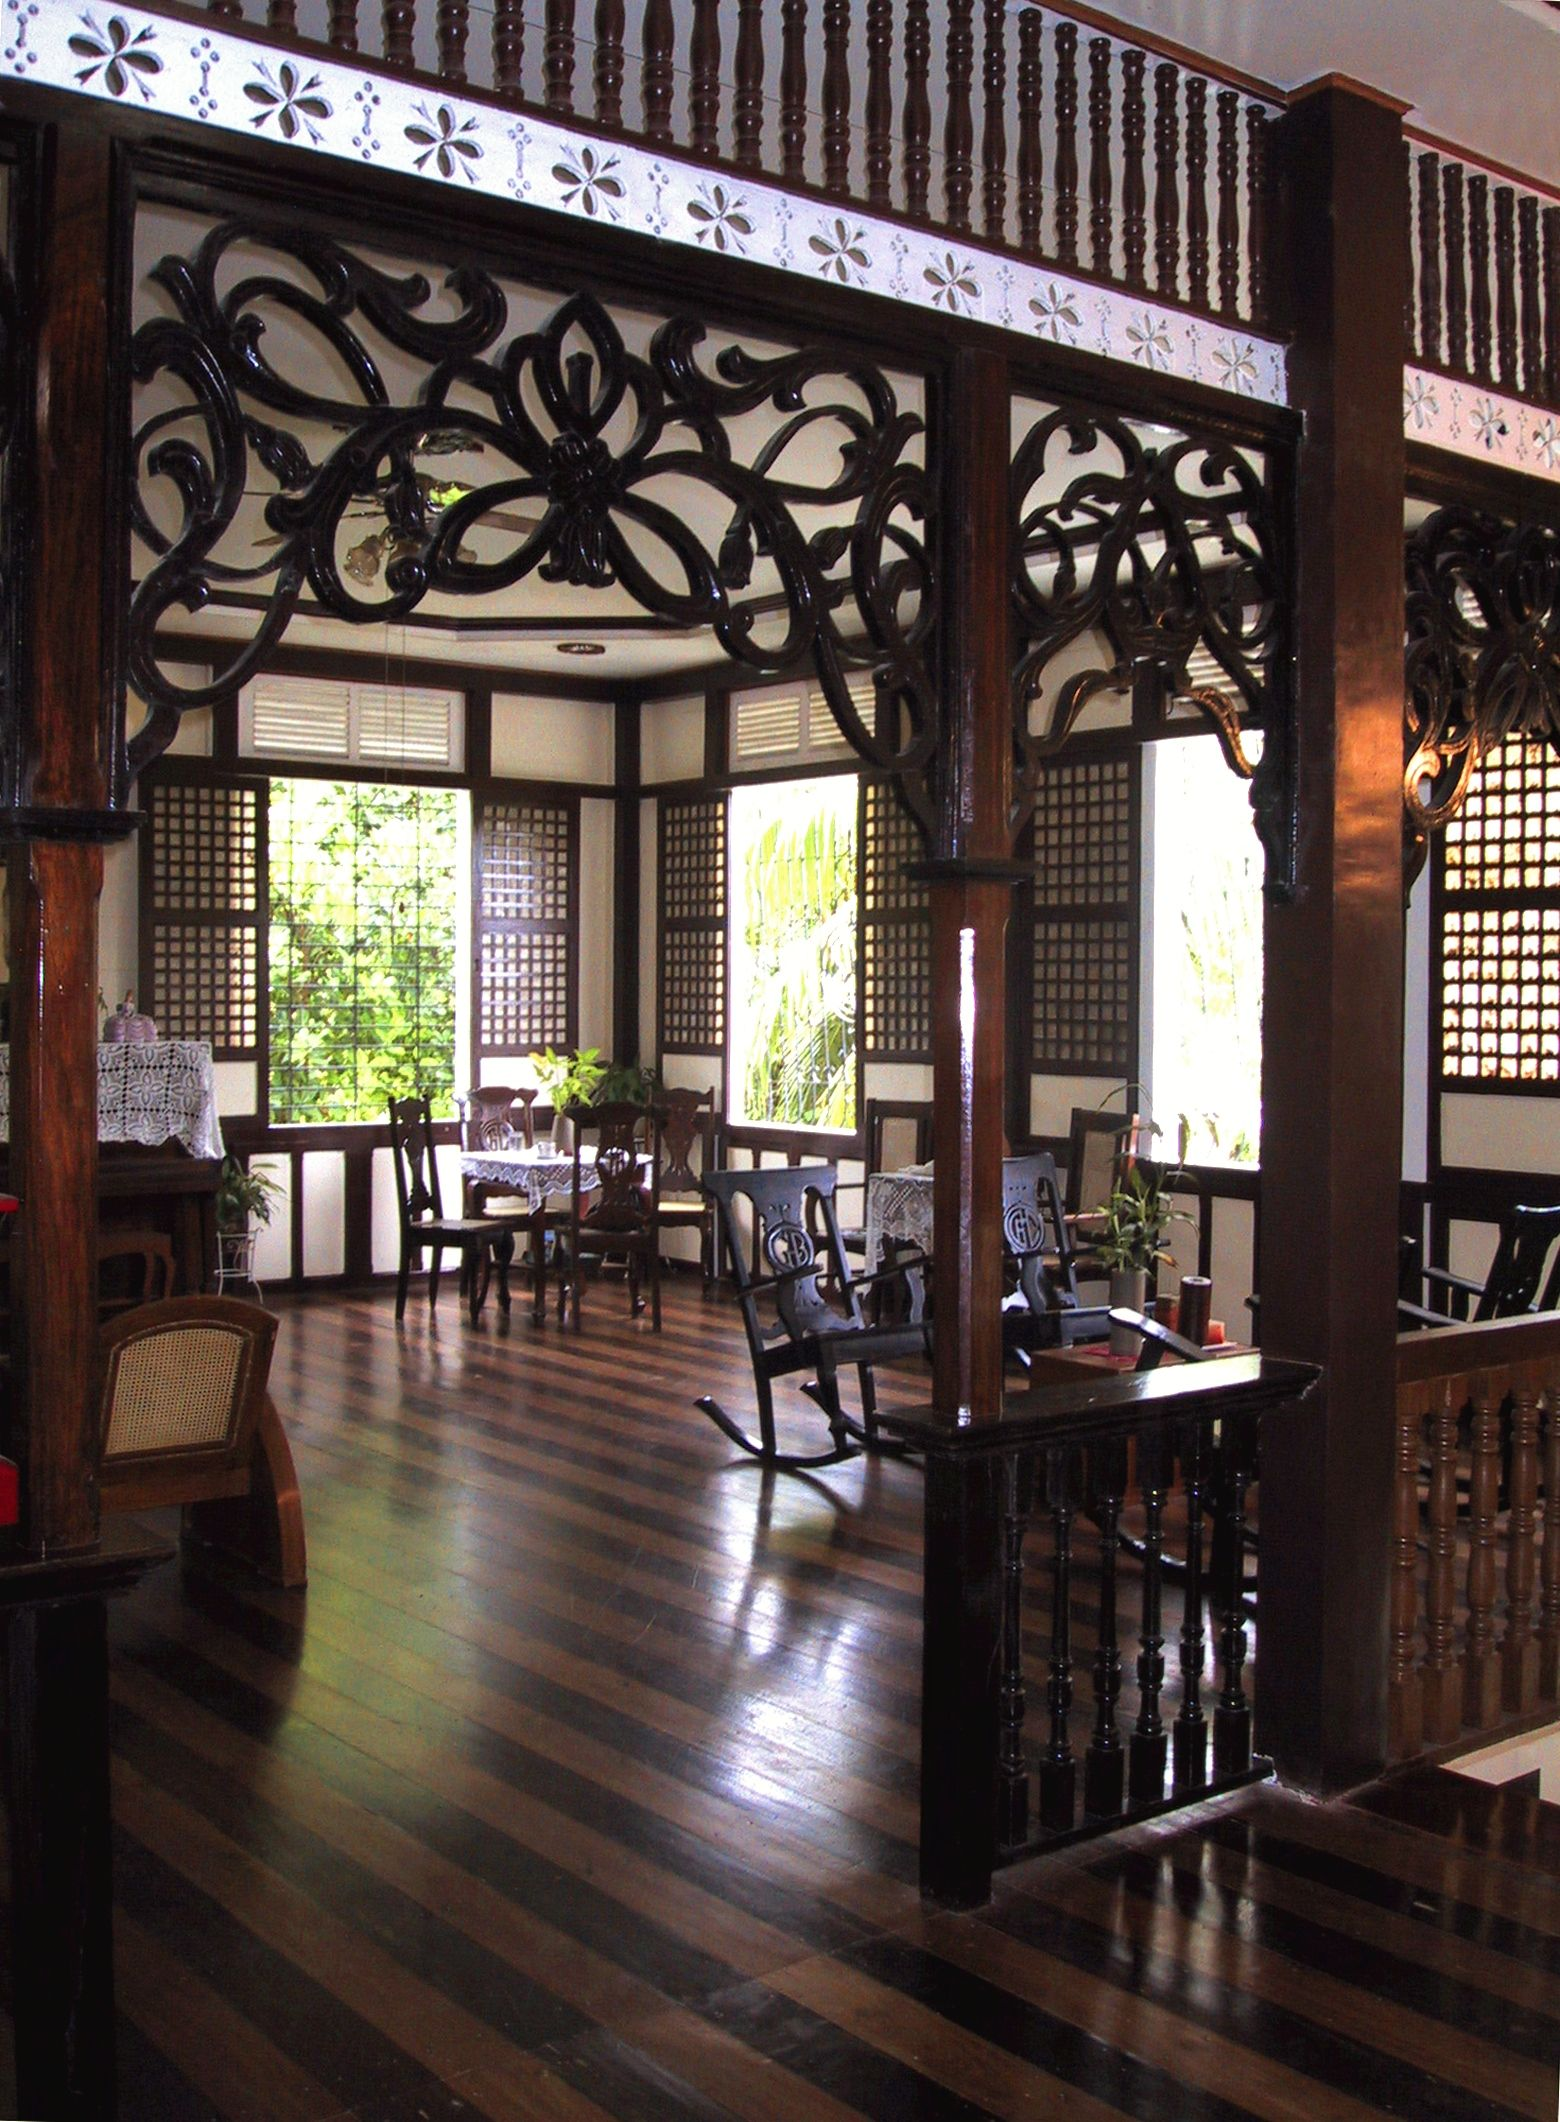 Philippine Architecture, Filipino Architecture, House Design, House Ideas, Chair, Asian